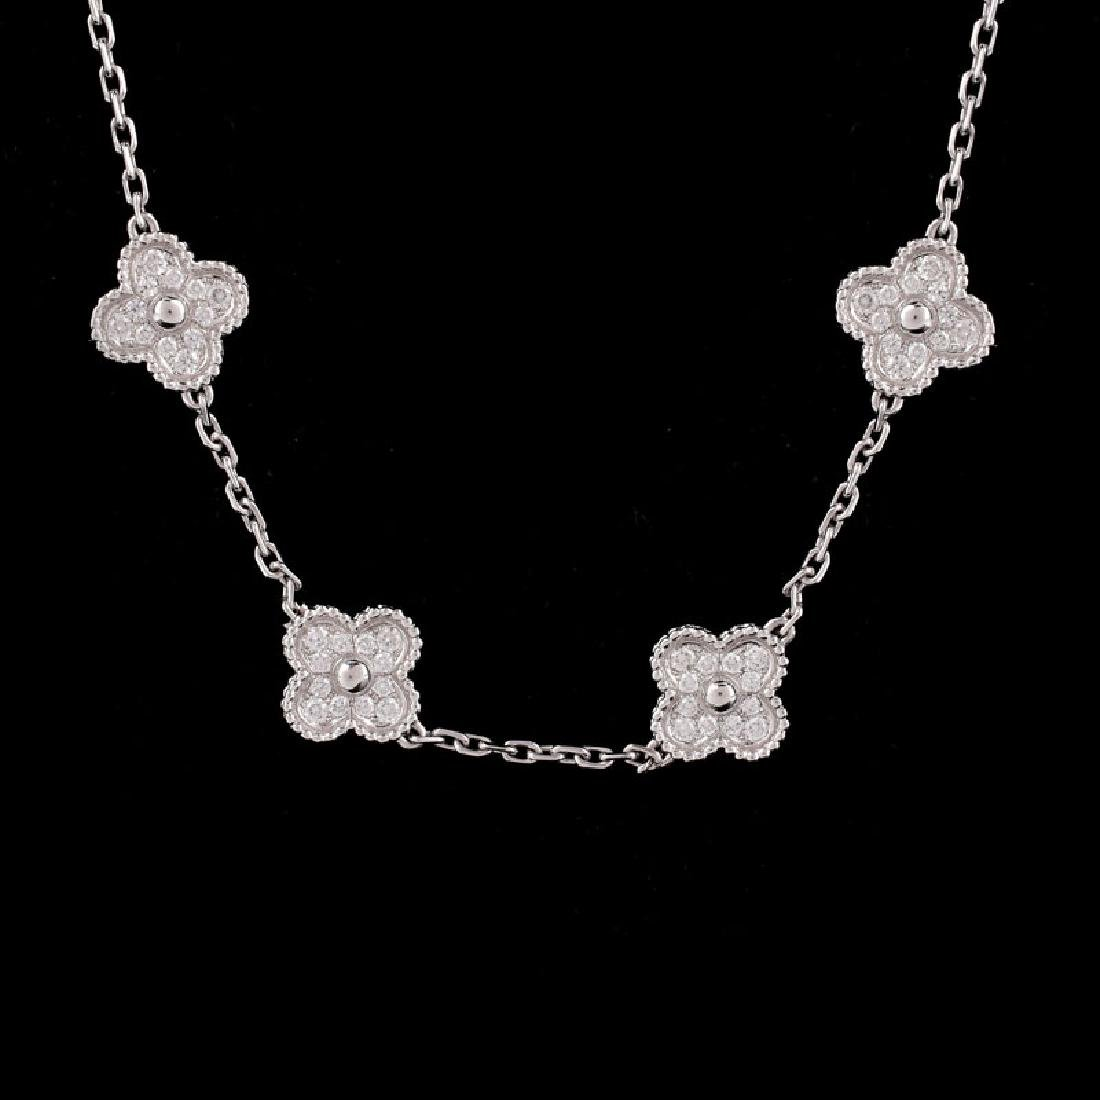 Van Cleef & Arpels Style Diamond and 18 Karat White - 2